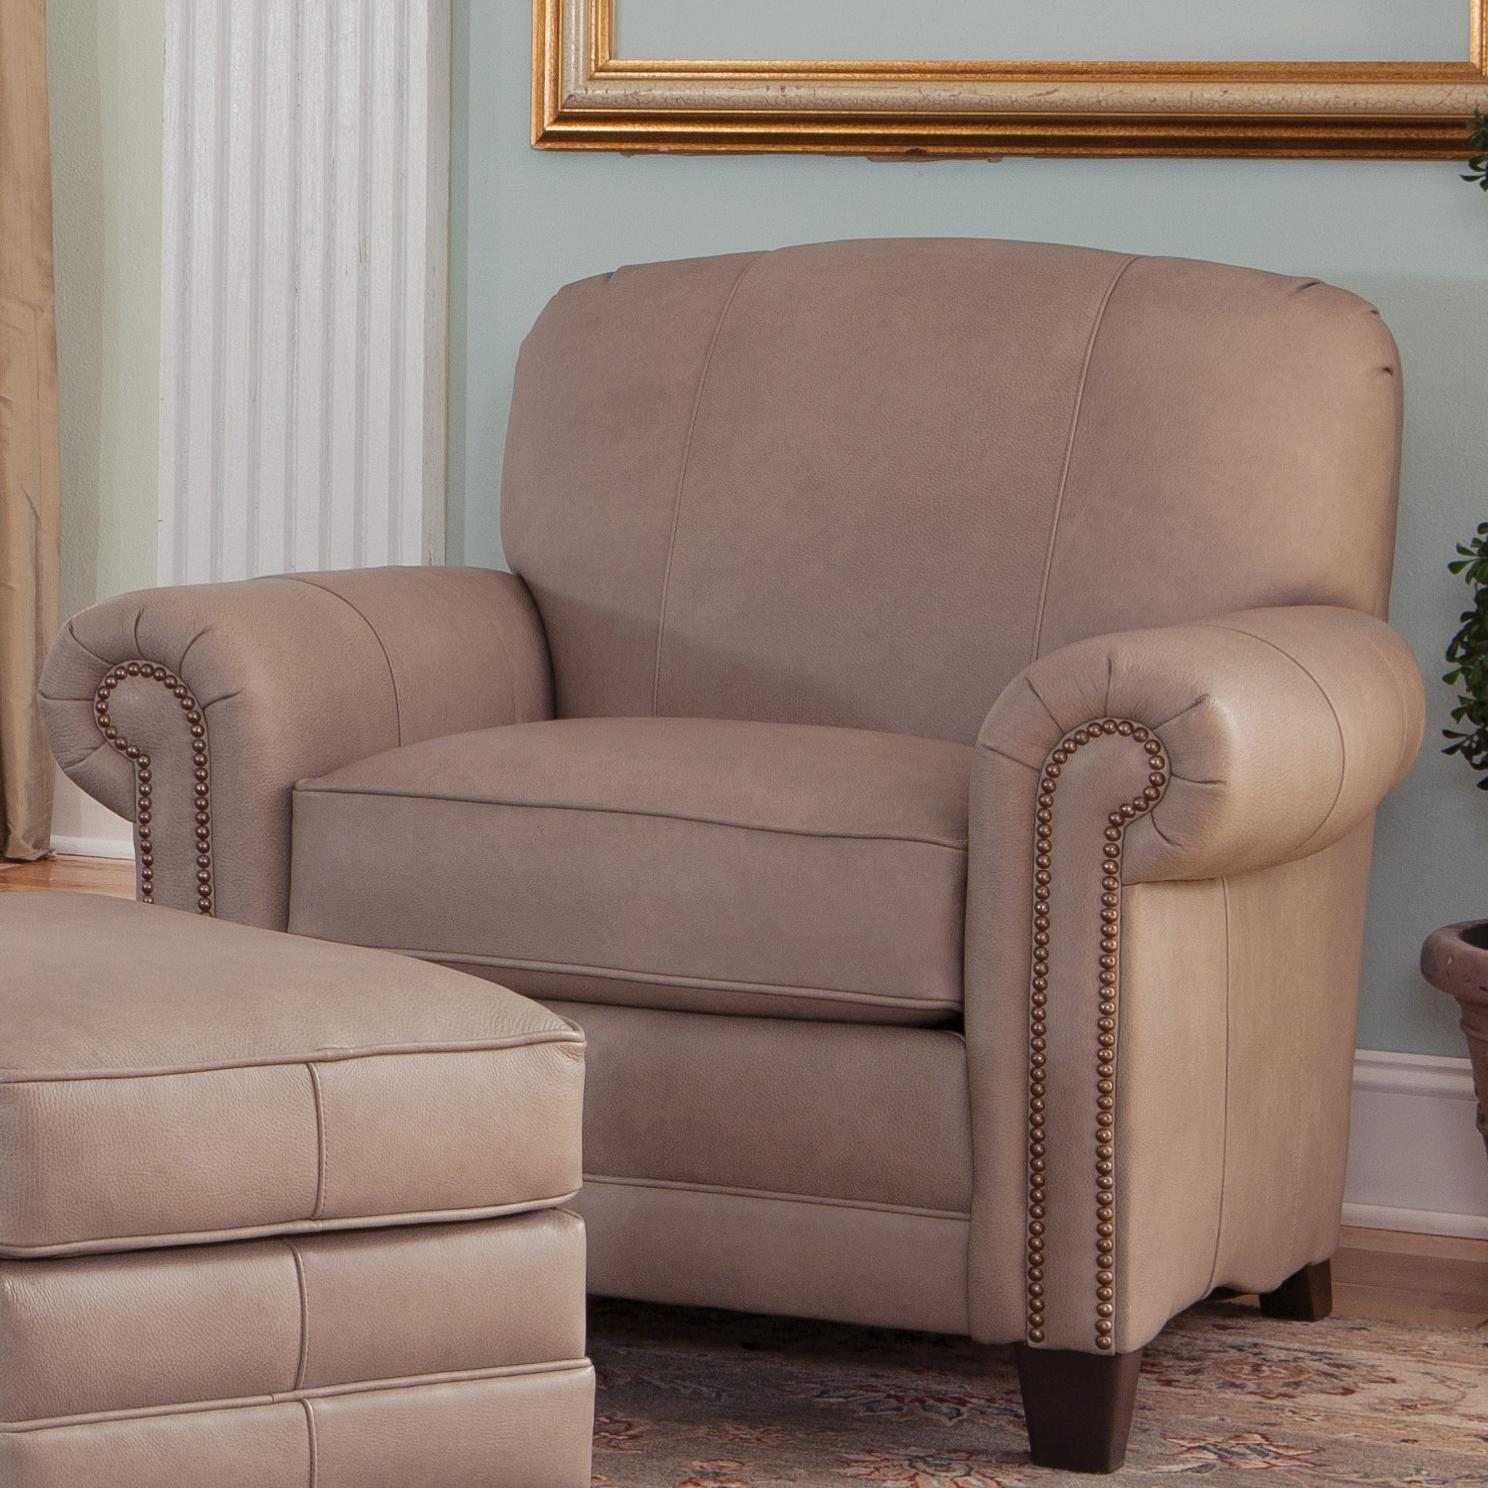 397 Upholstered Chair by Smith Brothers at Rooms for Less